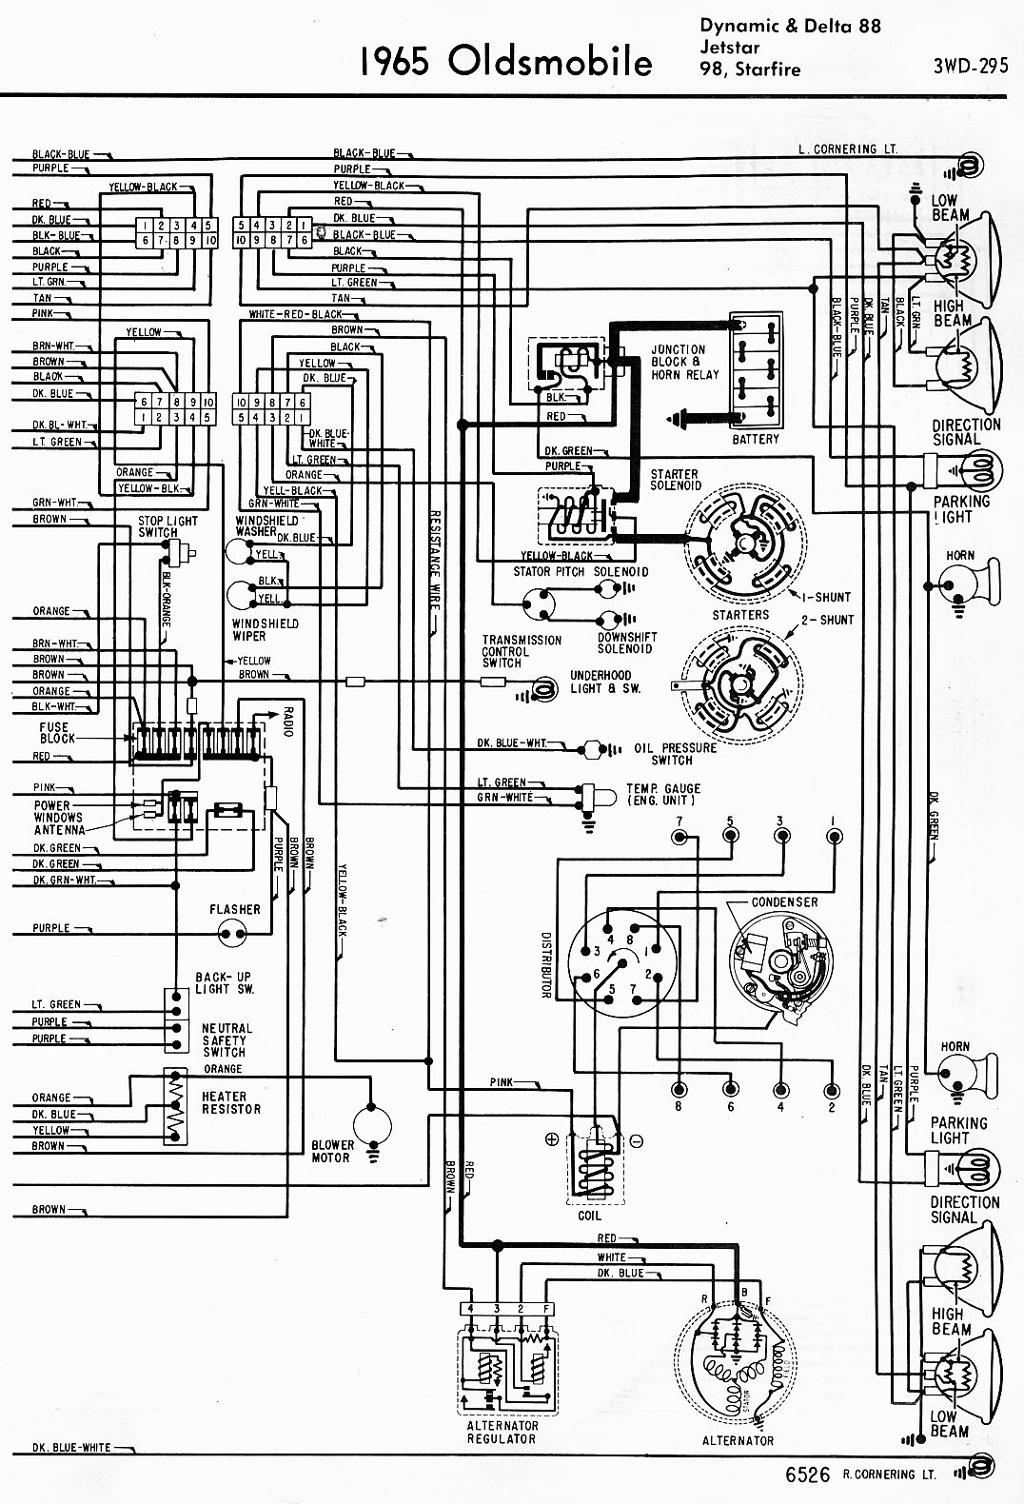 hight resolution of 65 olds wiring diagram wiring diagram 1965 oldsmobile 98 wiring diagram